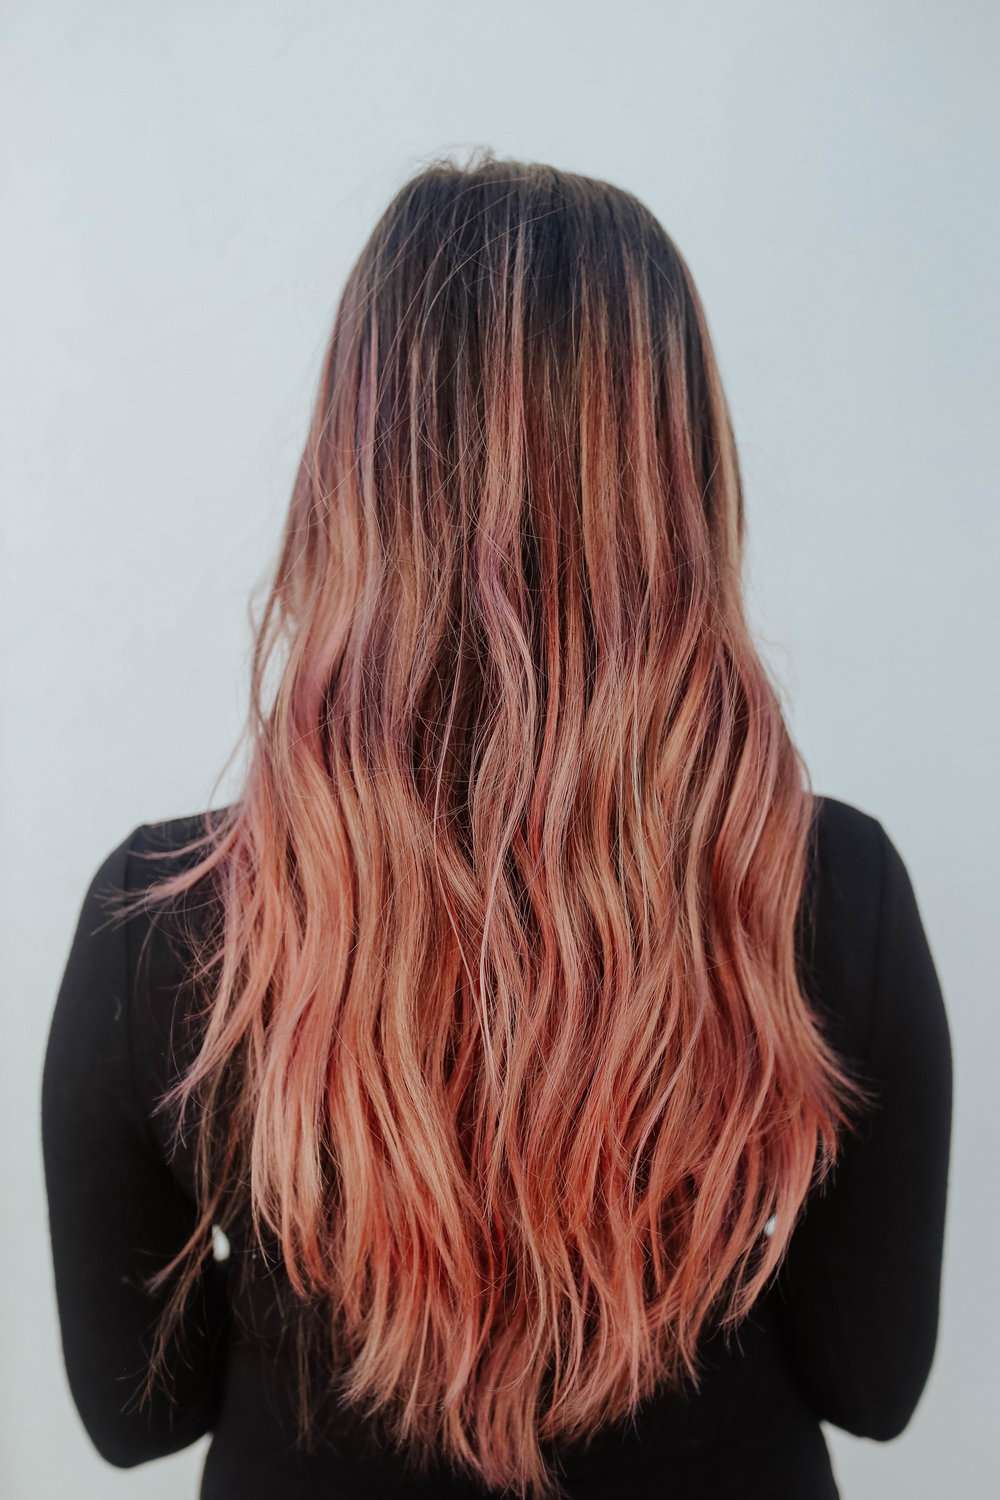 (3) rose gold hair - saving arguably the most fun for last 💖 i tried out this product last summer and not only was it so fun and easy to do, but it became one of my most popular posts to date and i still get questions about it. see this post to learn exactly how to do it and for all of my tips and tricks, but here is a quick run down:the Rose Gold Temporary Tint is available to buy at Target. you apply it to wet hair - the product is a spray, and you have to spray everywhere that you want the color (it doesn't blend out or transfer around). the color will last for 3 washes (about a weekend) and won't damage your hair, color treated or not. the color will show up best on lightened hair but will still add a tint if your hair is brunette. and who doesn't want pink hair on Valentine's Day? ha